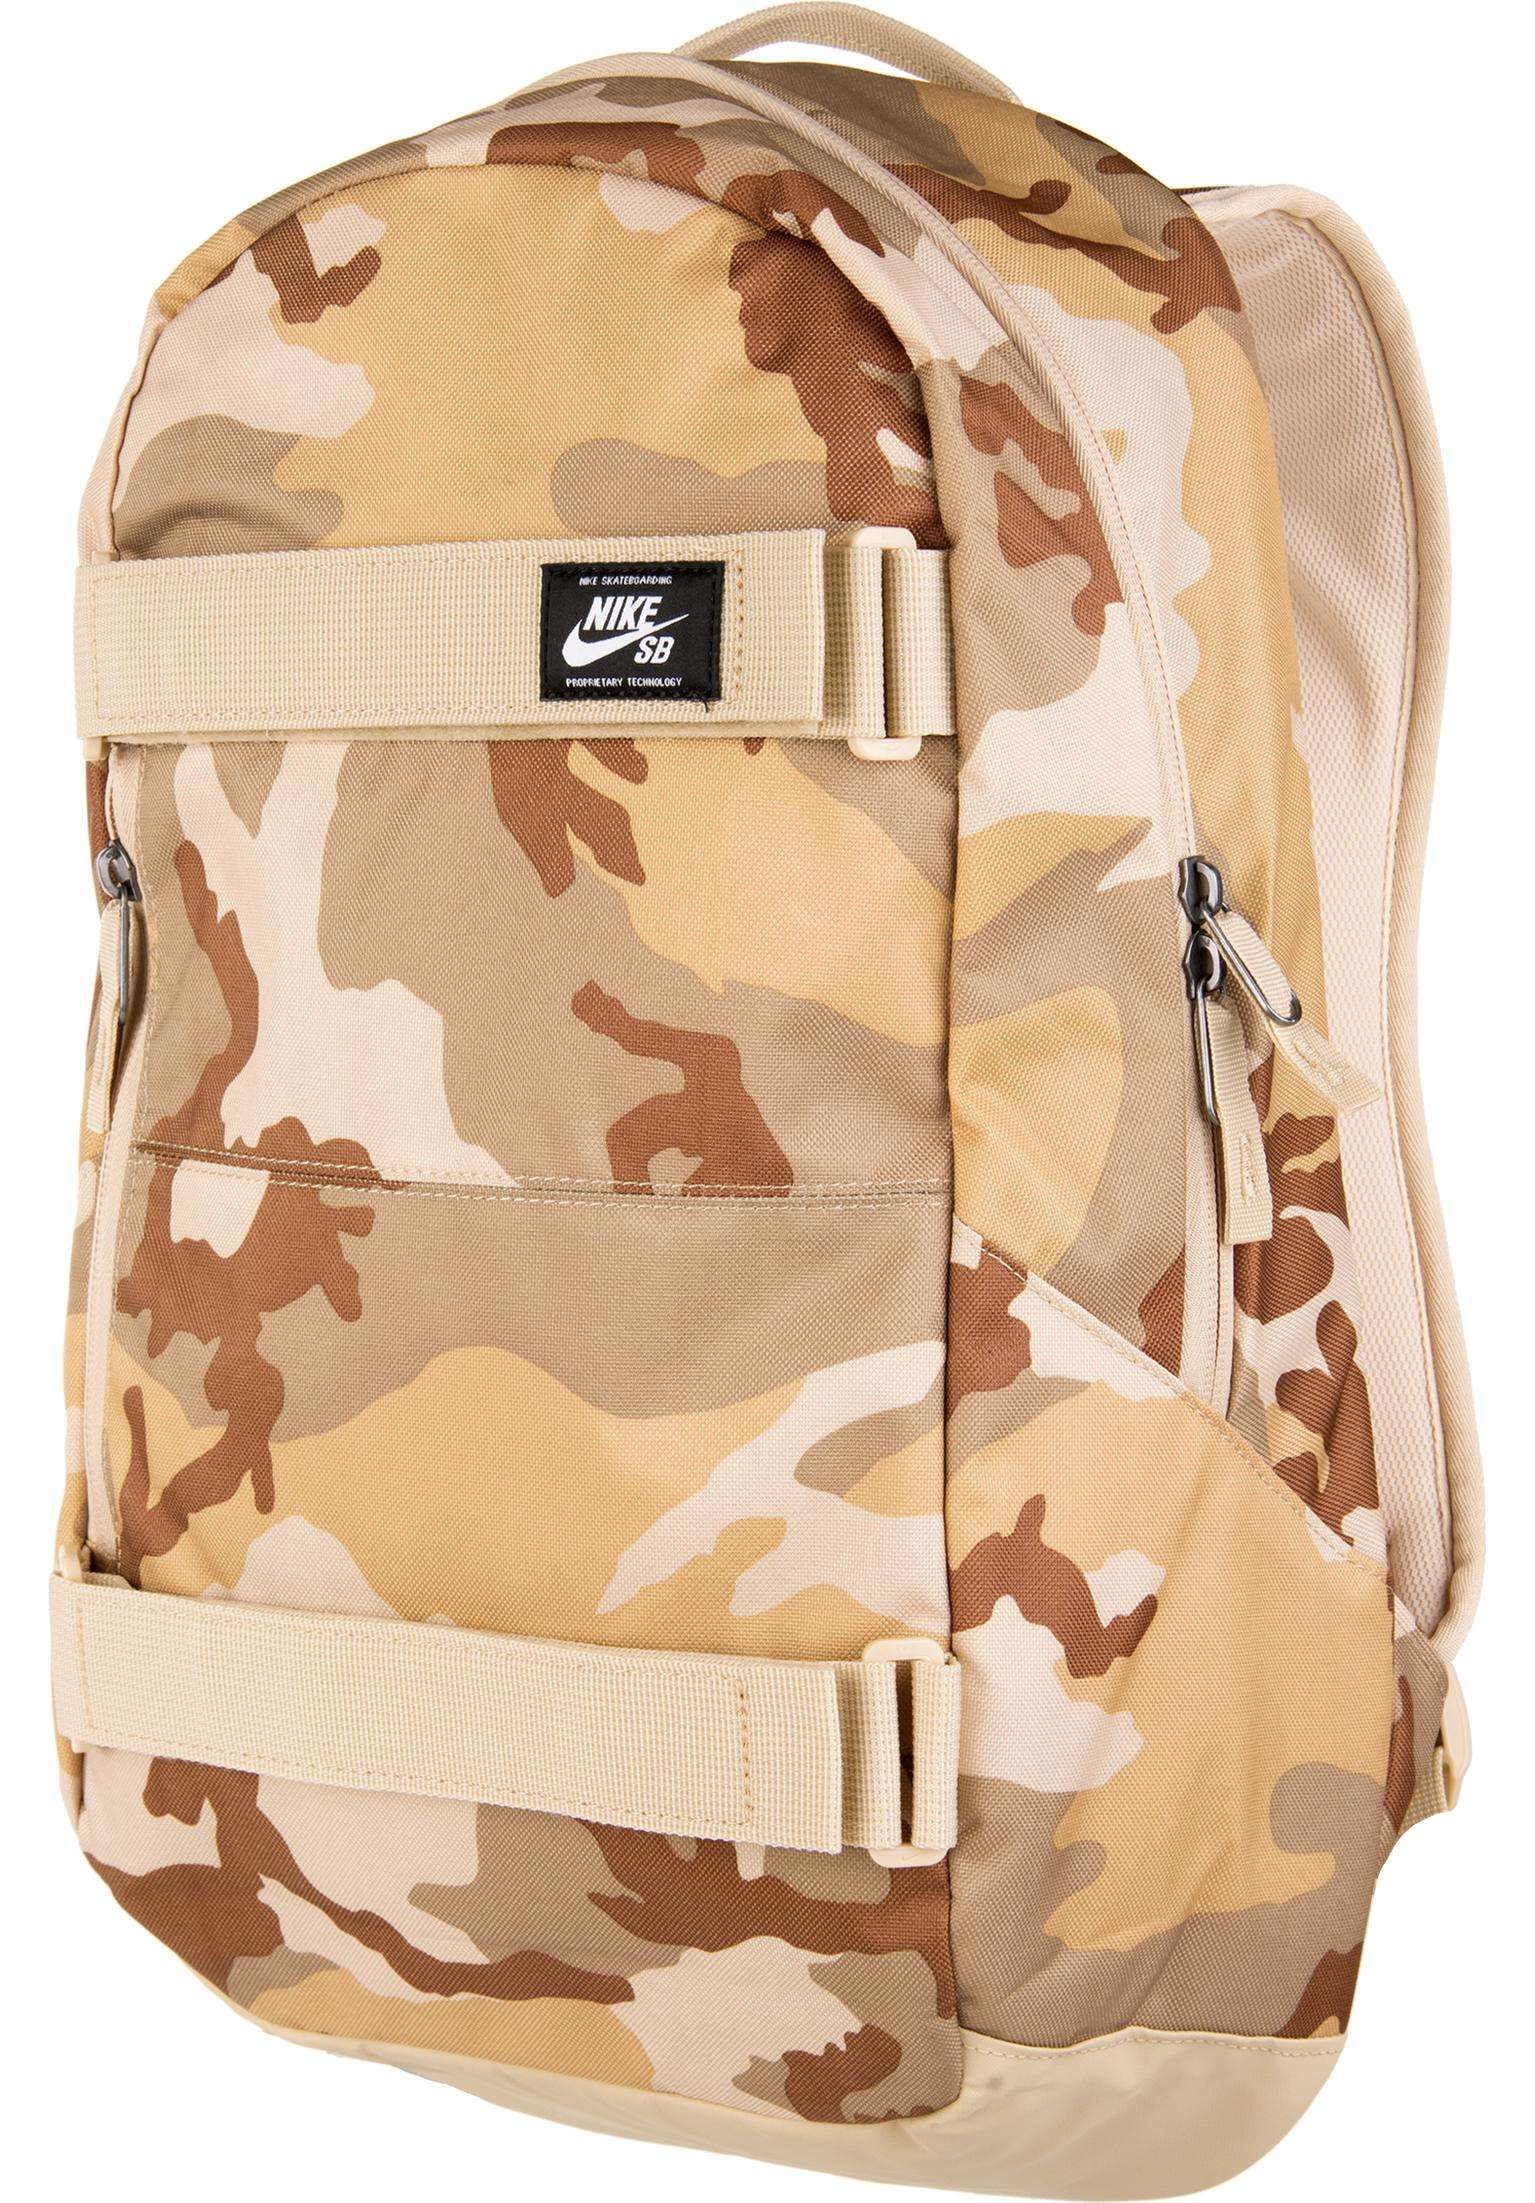 623b0333a1 Courthouse Nike SB Backpacks in desertcamo for Men | Titus